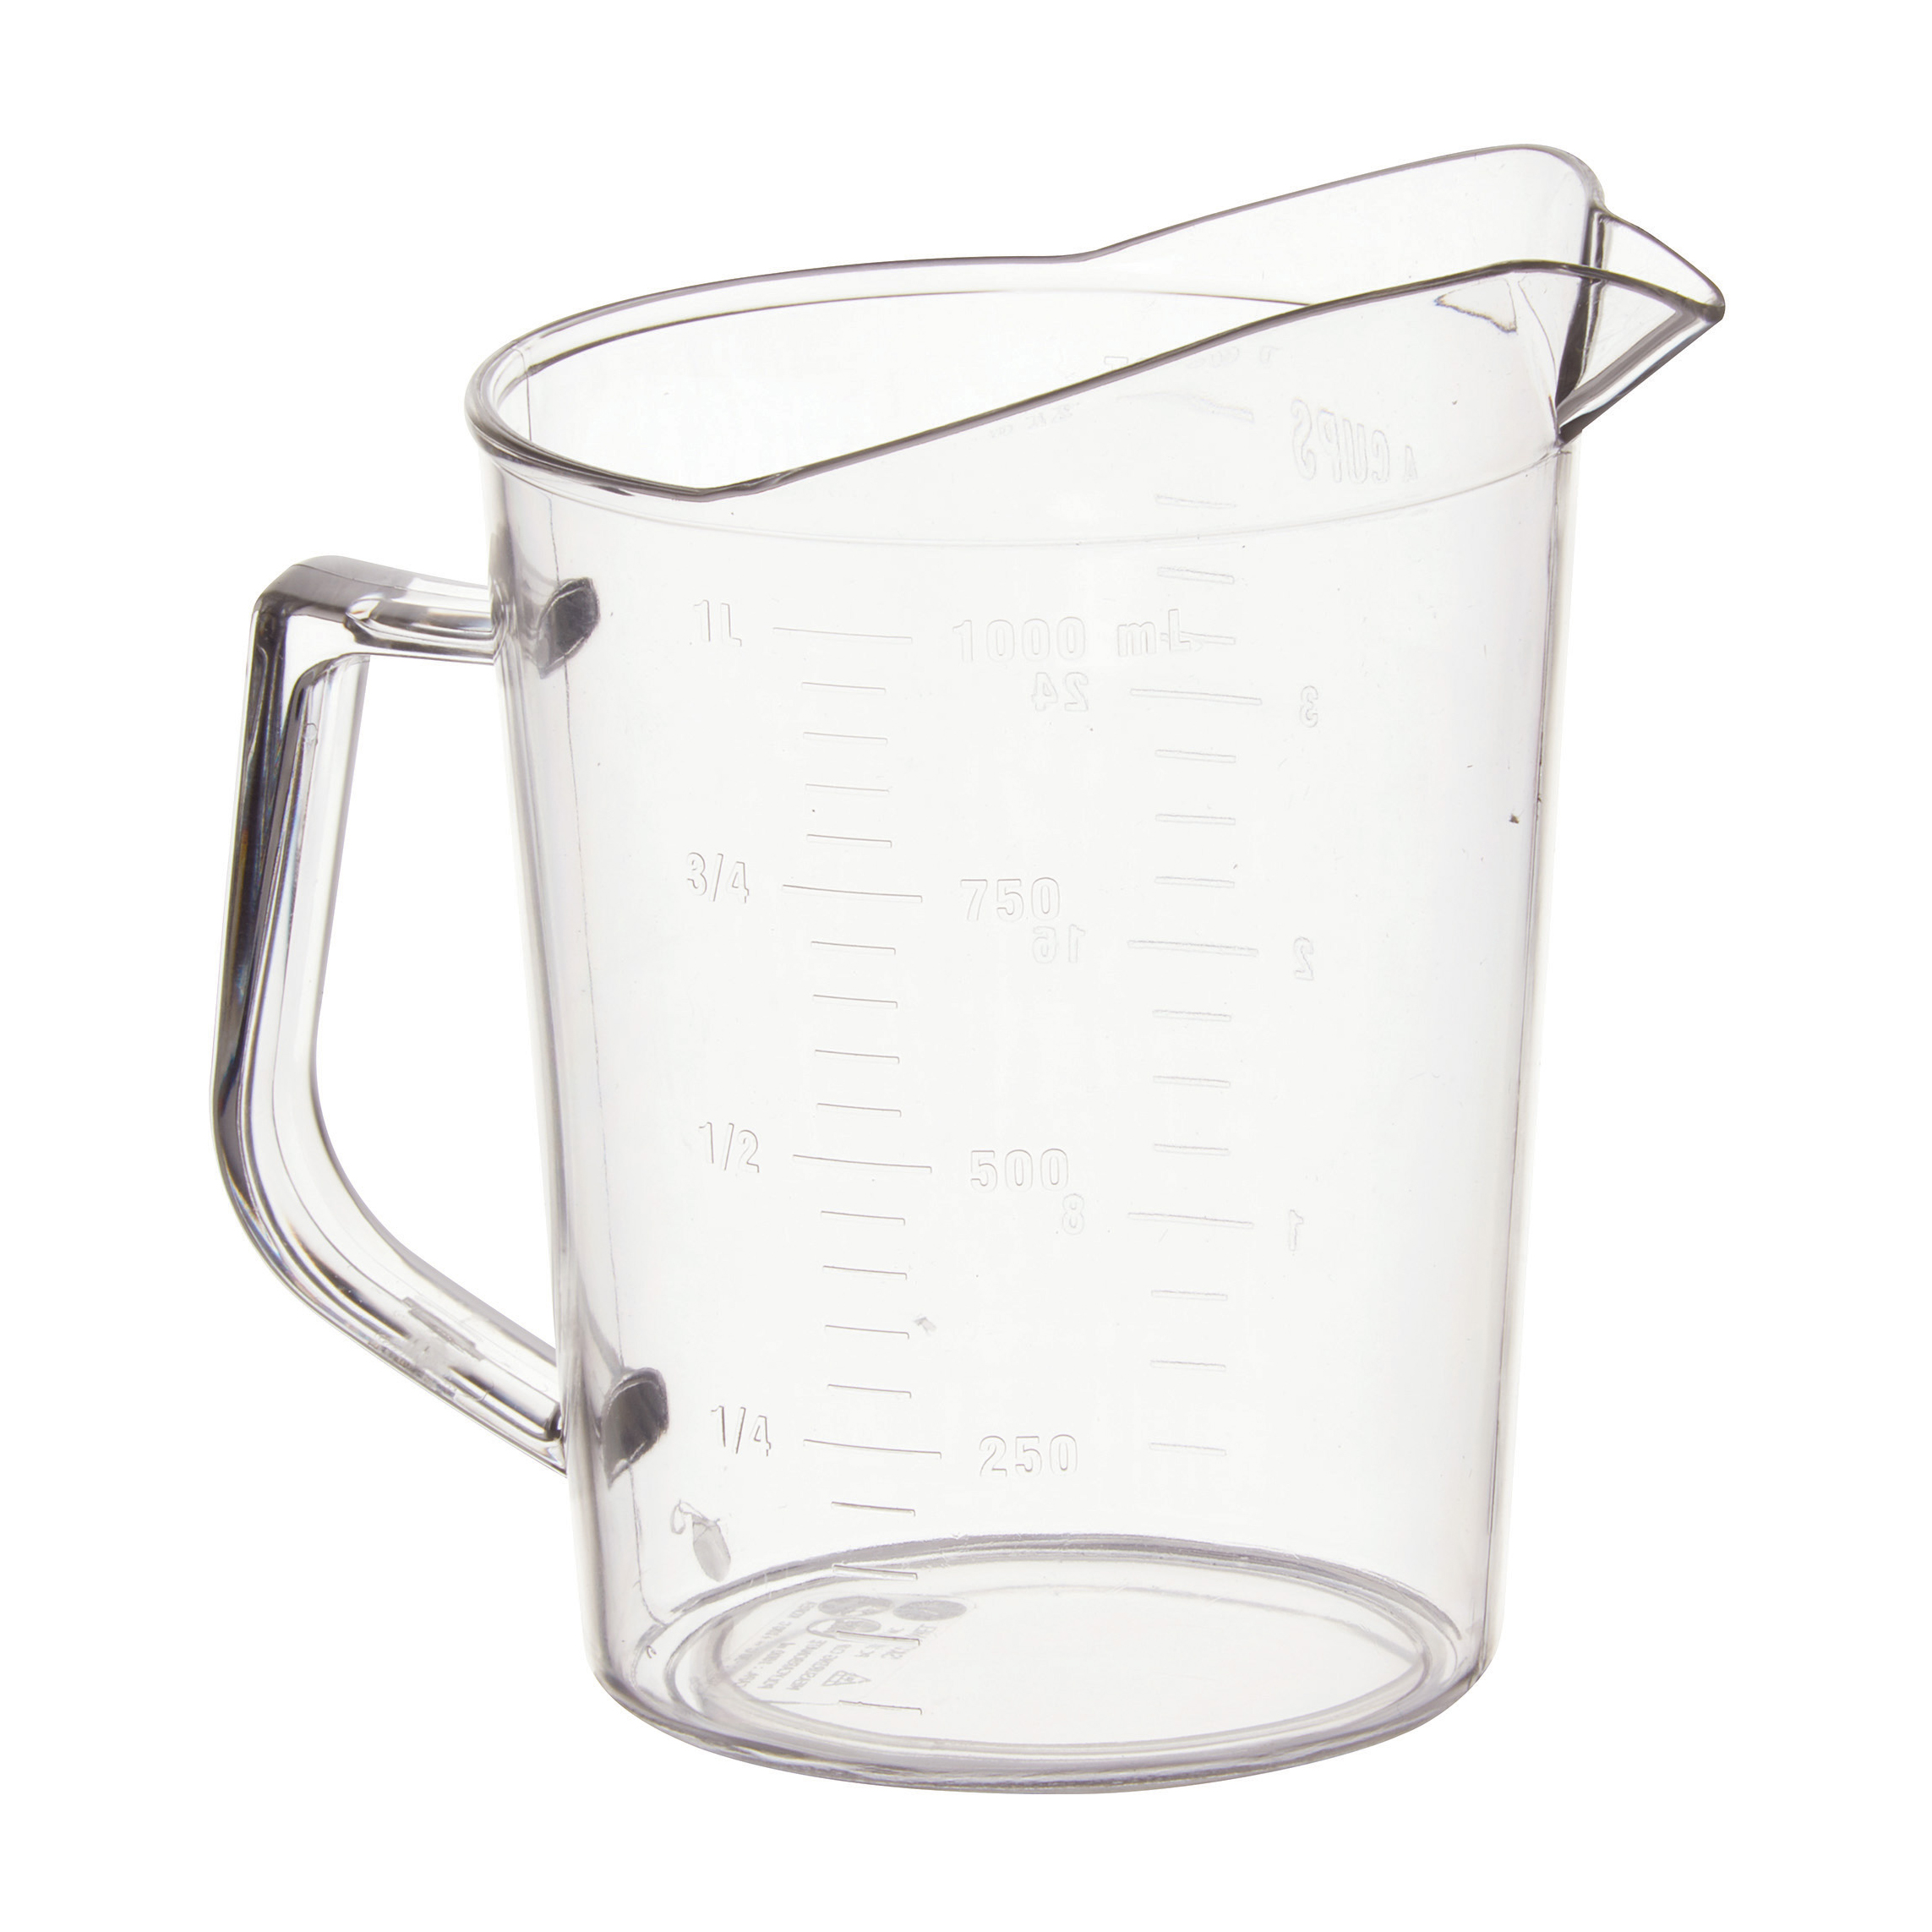 Winco PMU-100 measuring cups